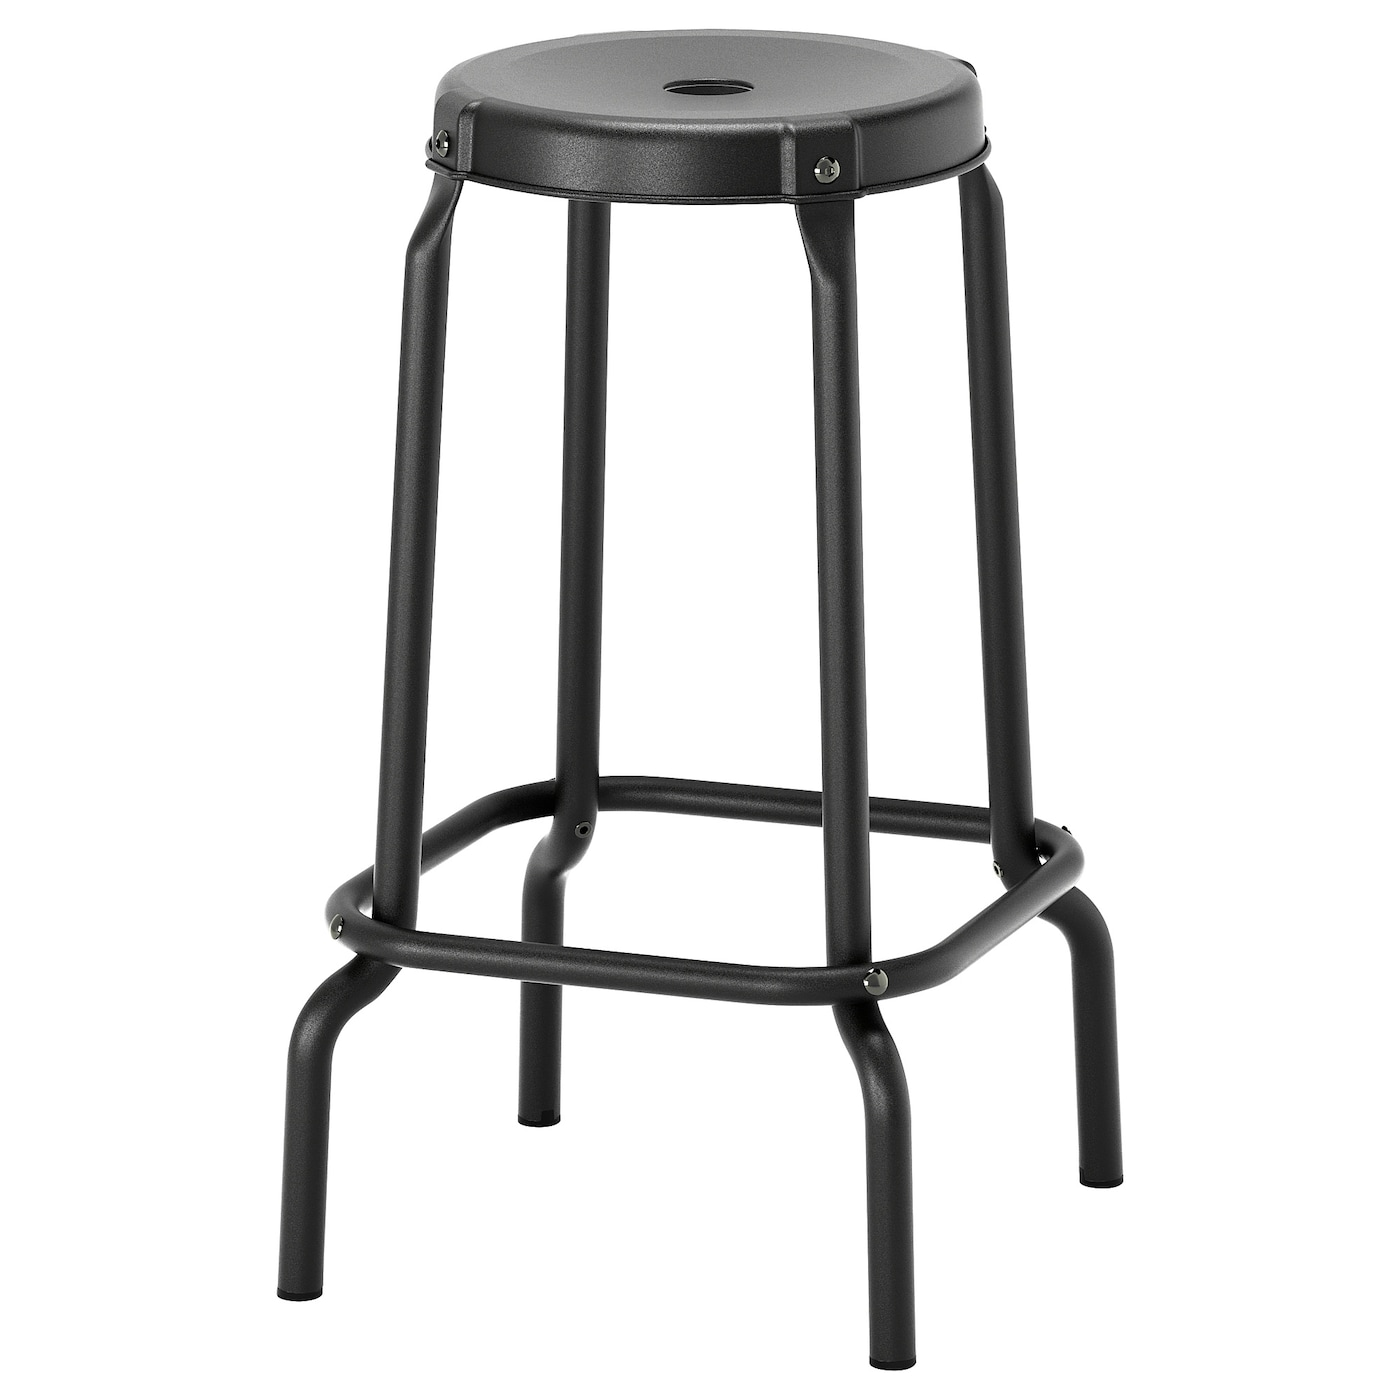 Swell Bar Stool Raskog Black Uwap Interior Chair Design Uwaporg